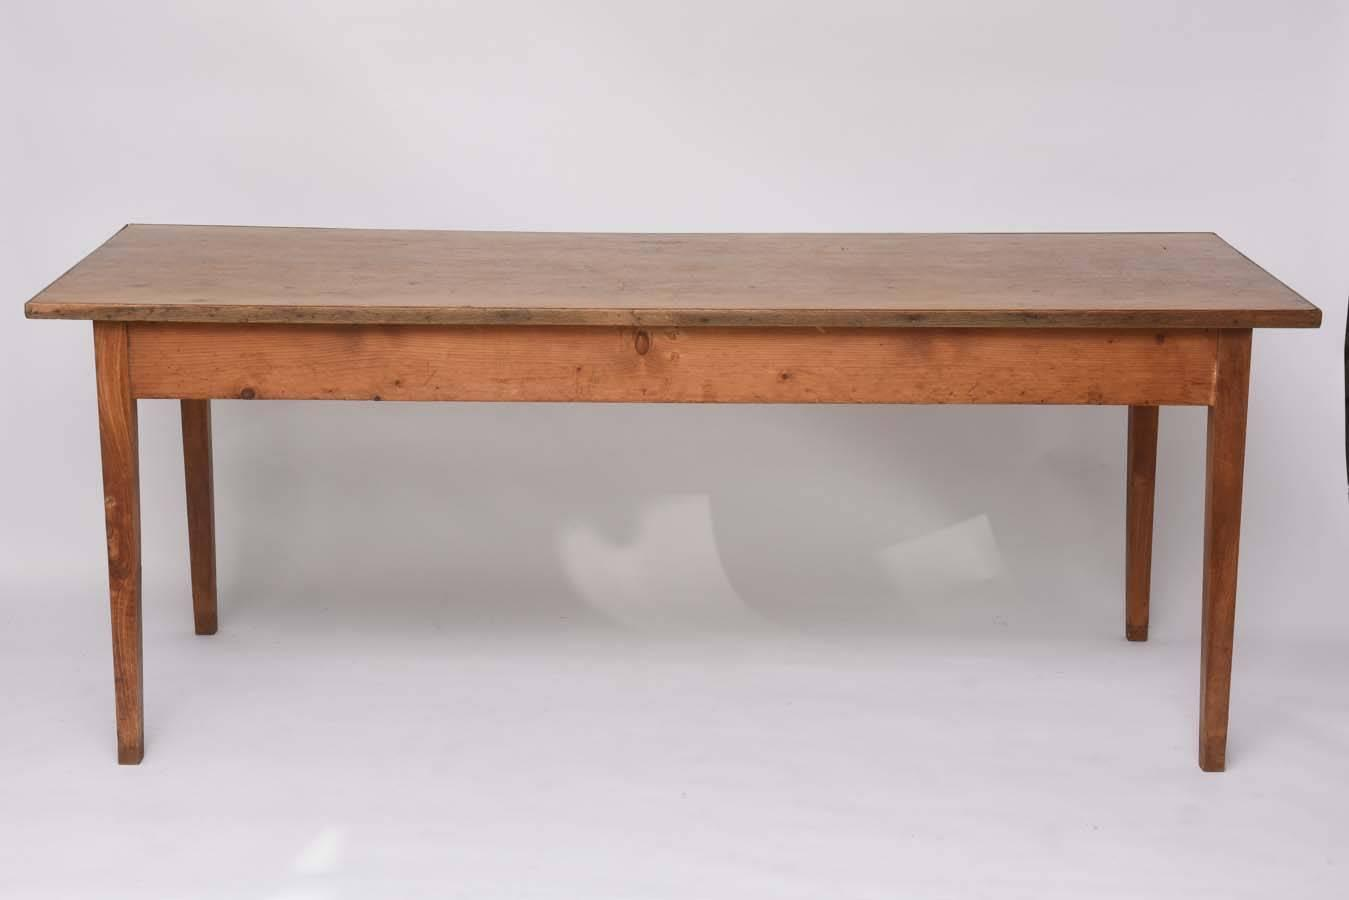 rectangular wood farm table with two drawers circa